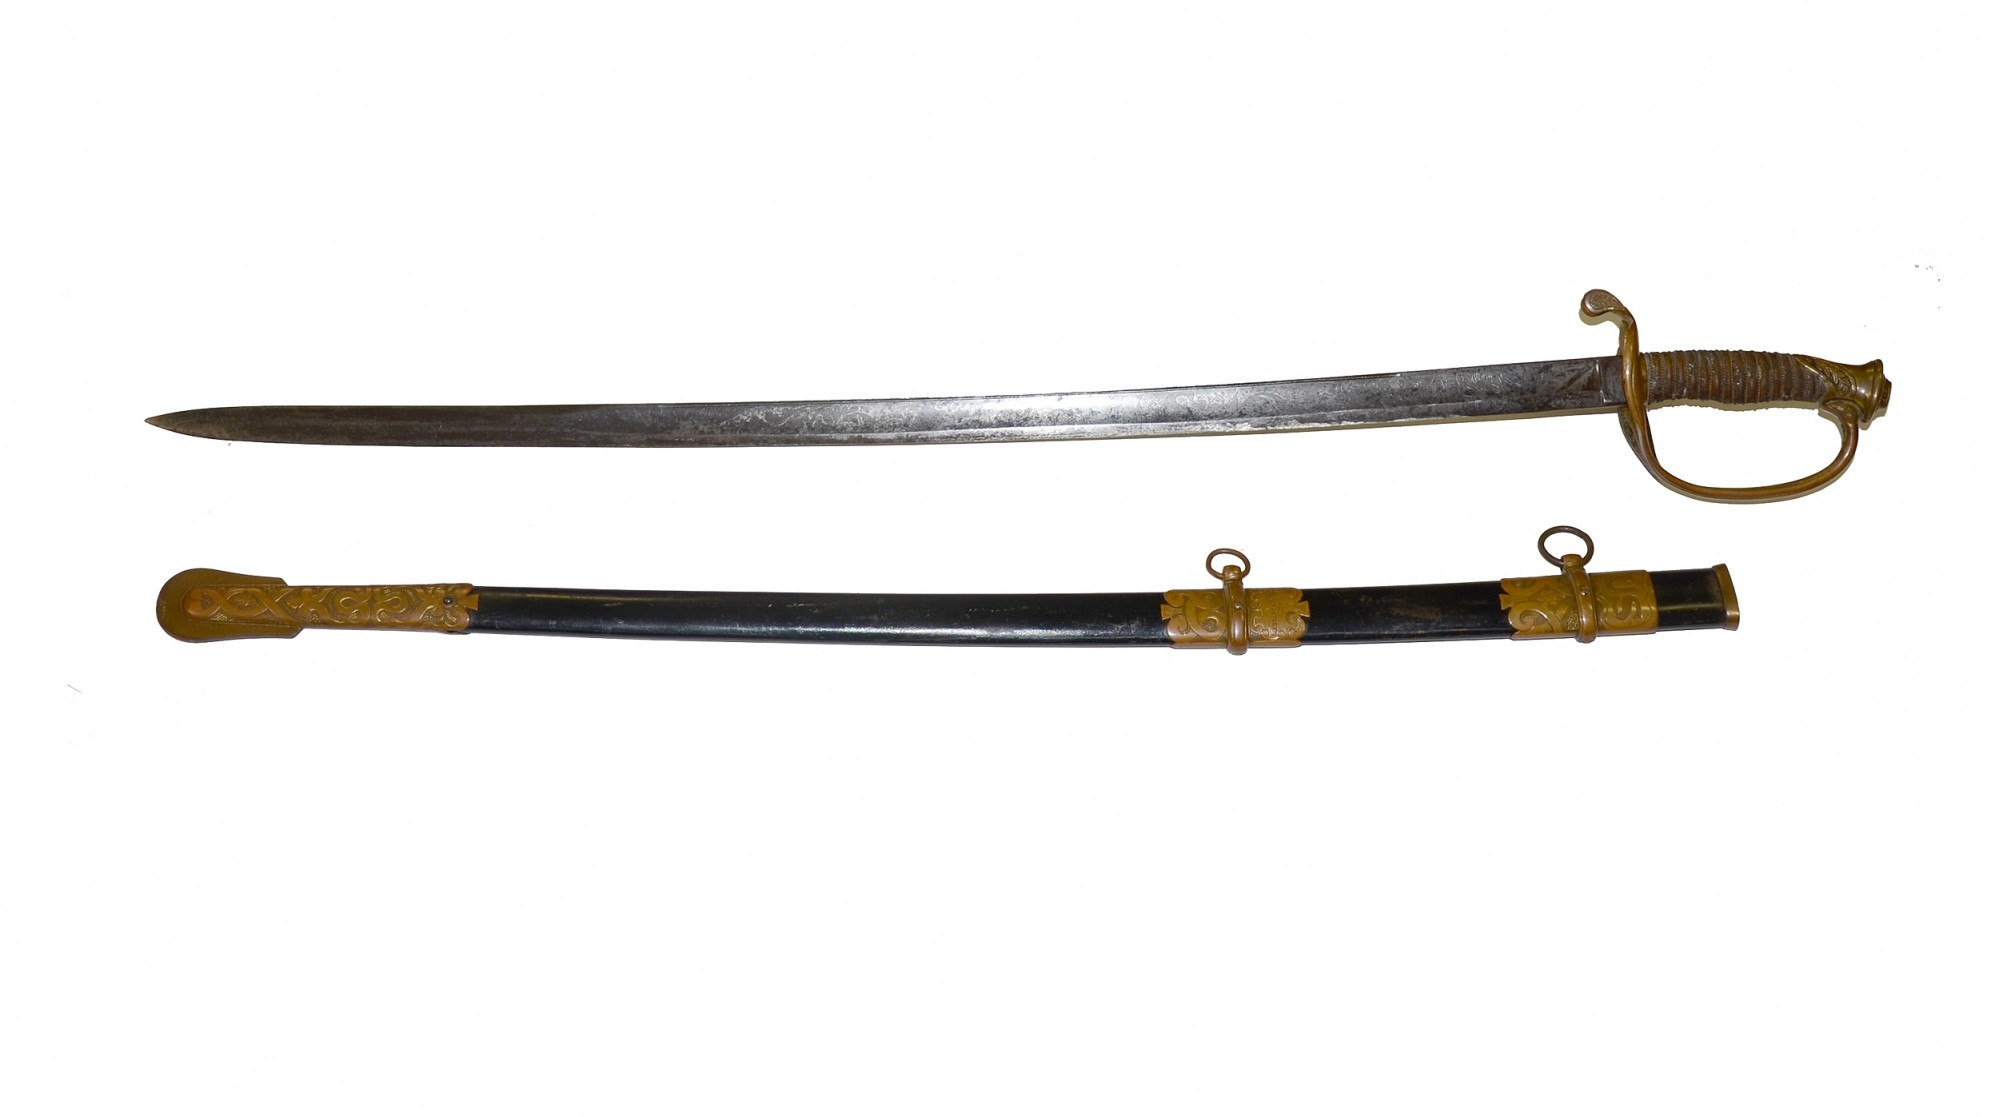 MODEL 1850 STAFF AND FIELD OFFICER'S SWORD ID'D TO 78TH NEW YORK ADJUTANT